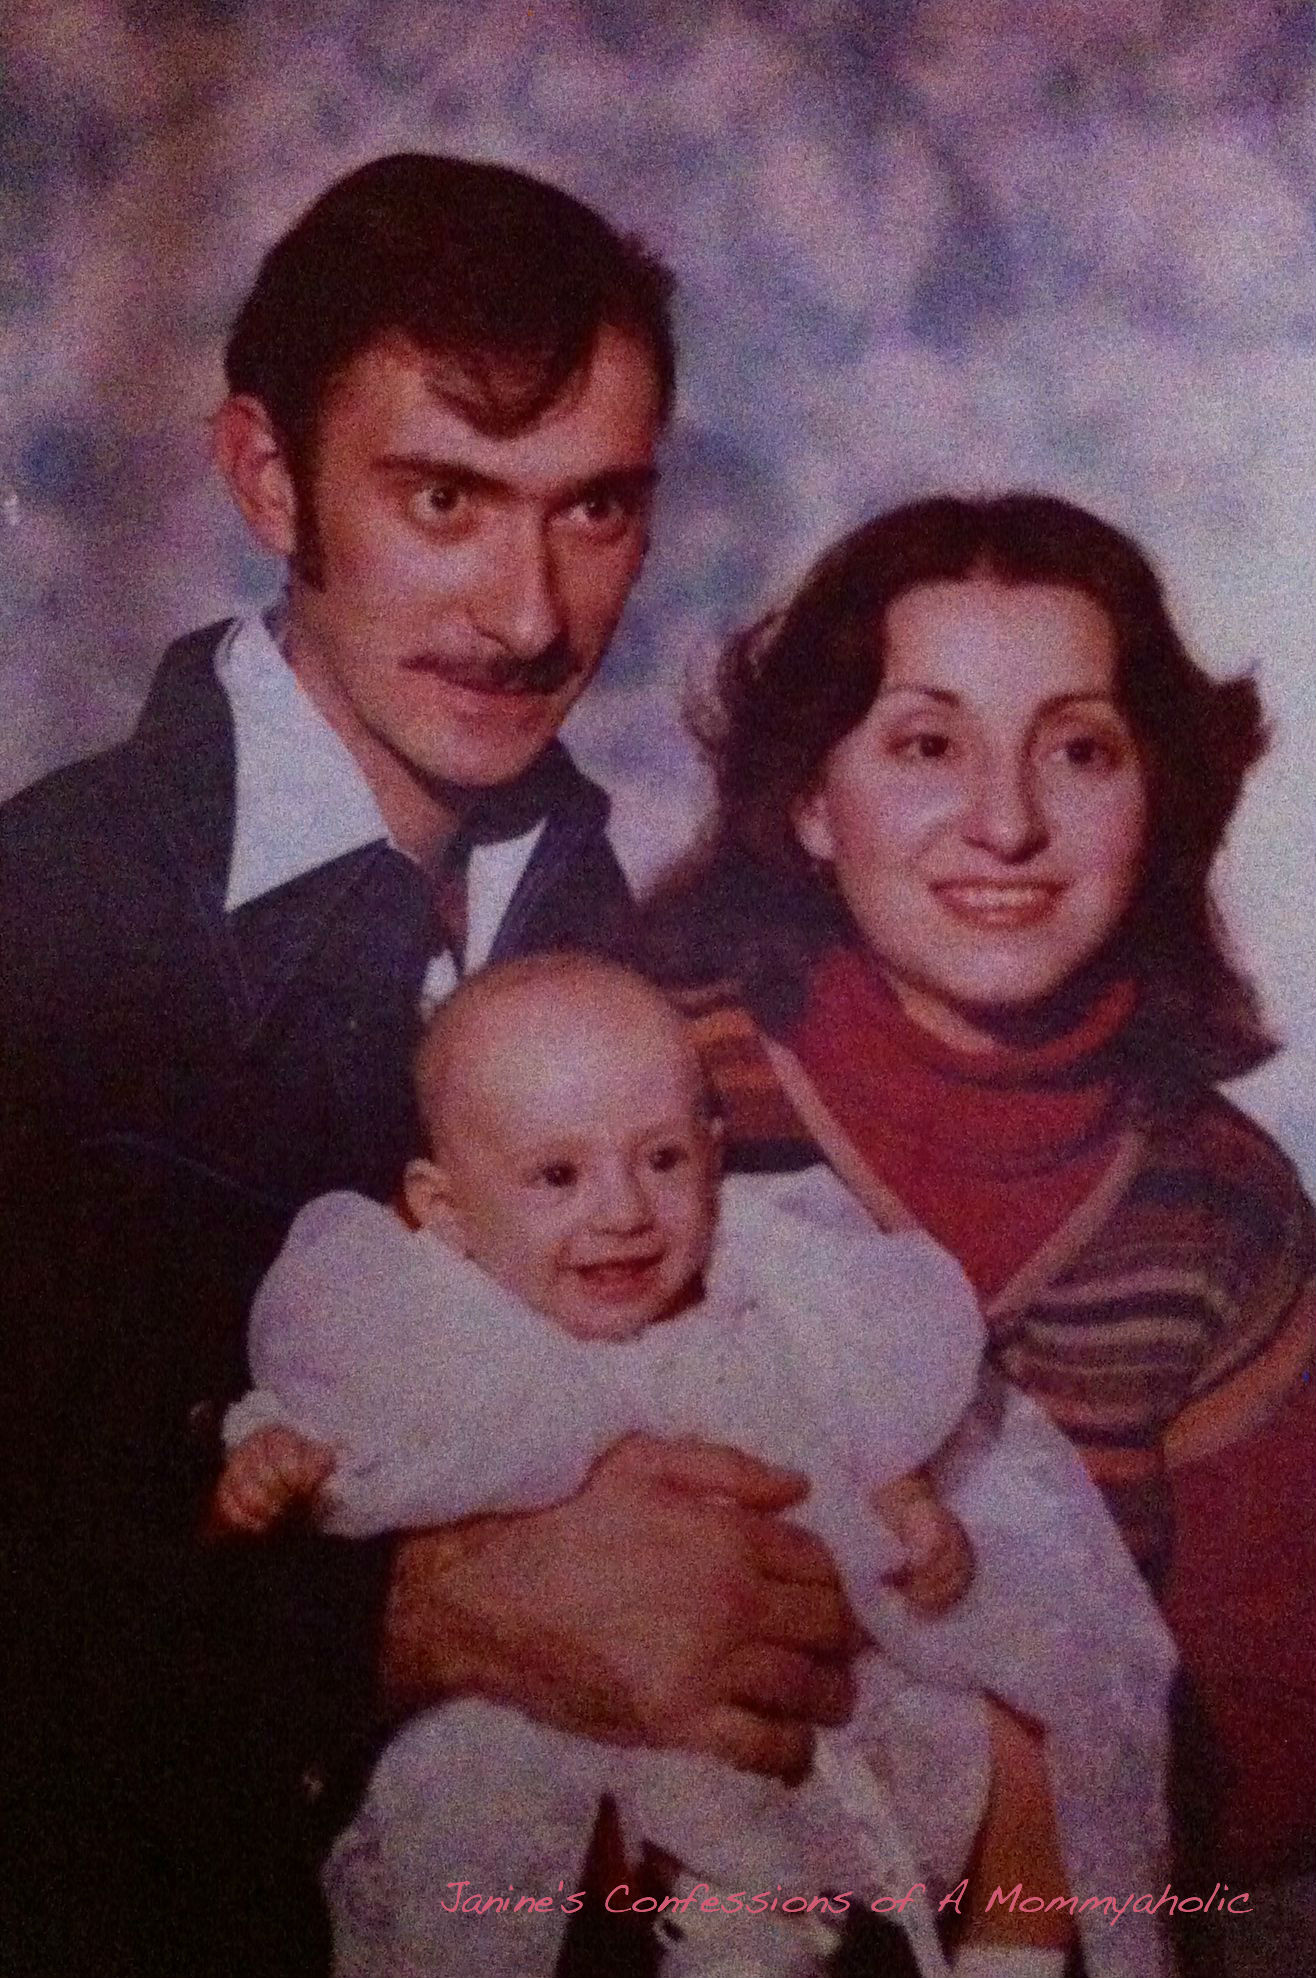 Me with my parents as a baby back in the 70s